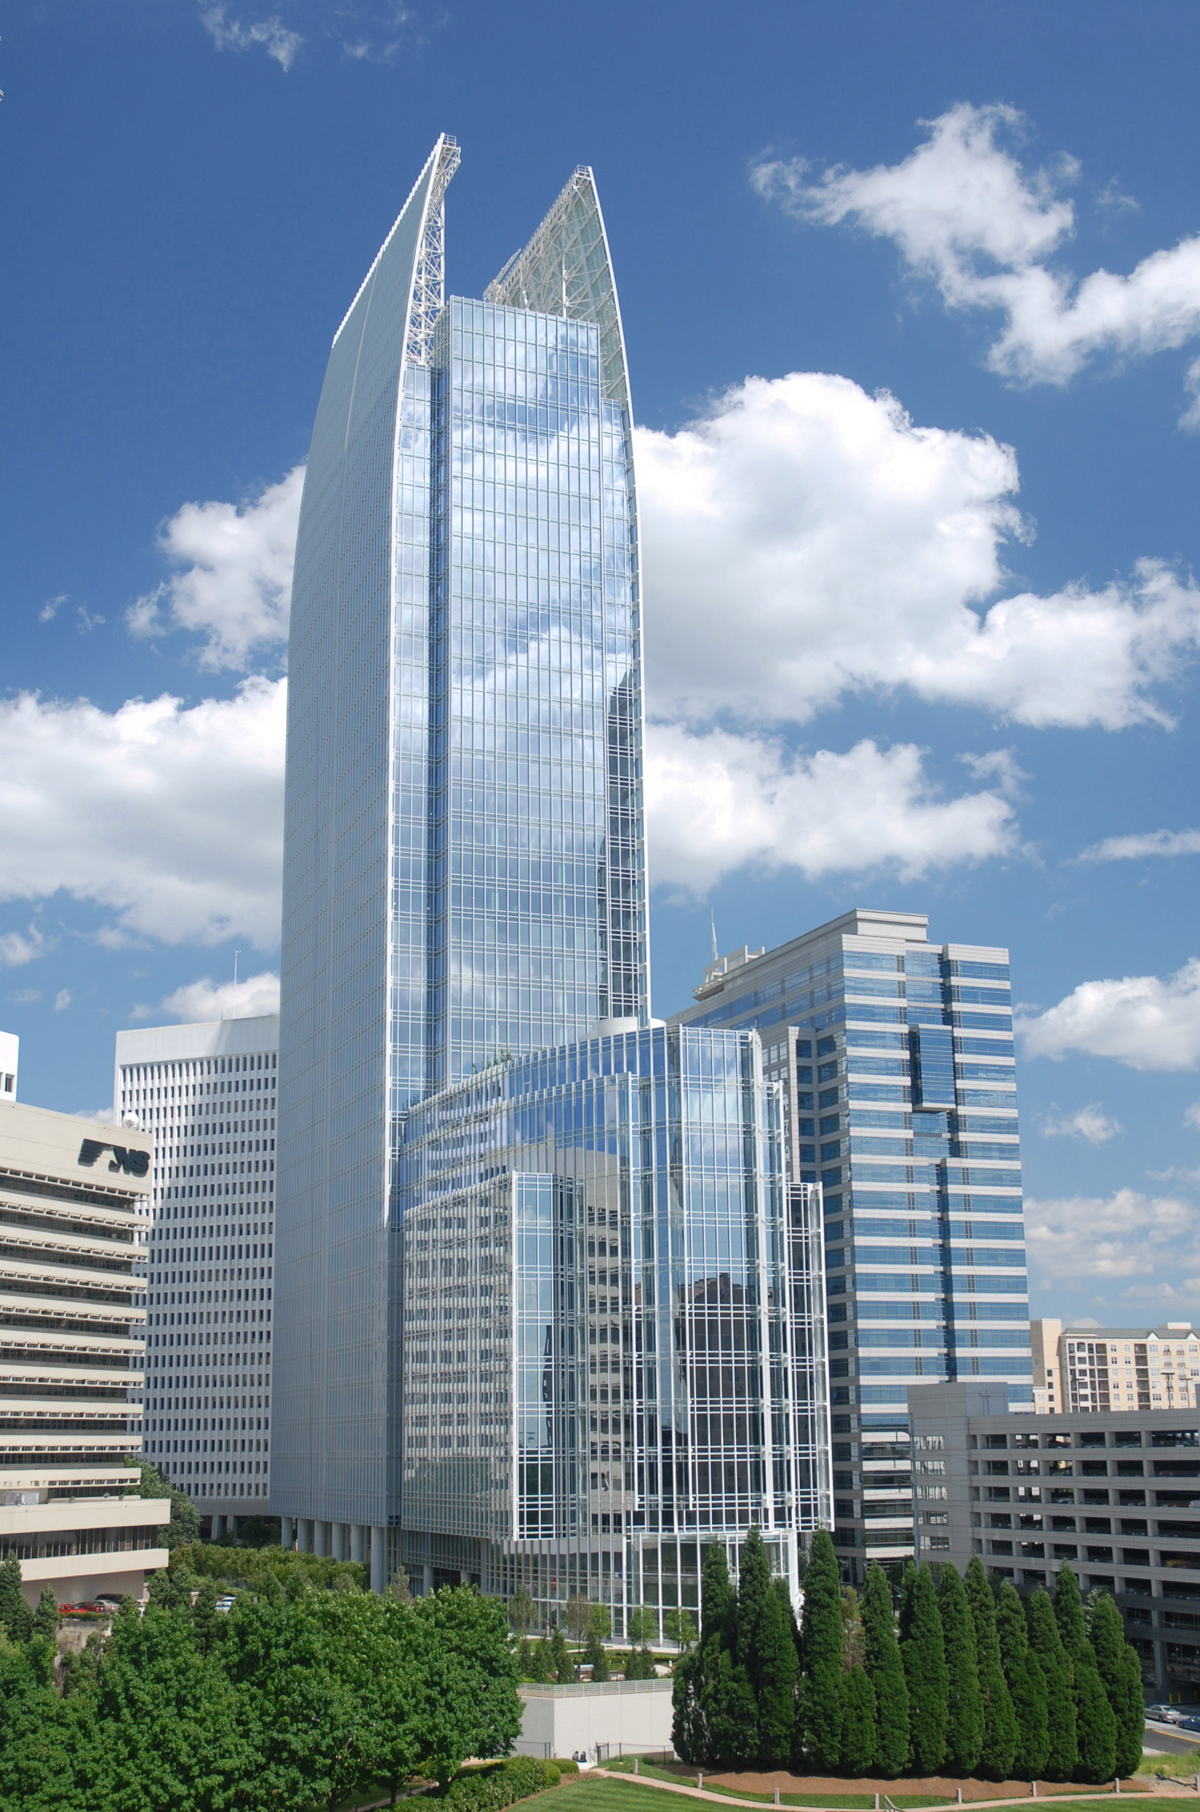 1180 Peachtree - Atlanta, GA